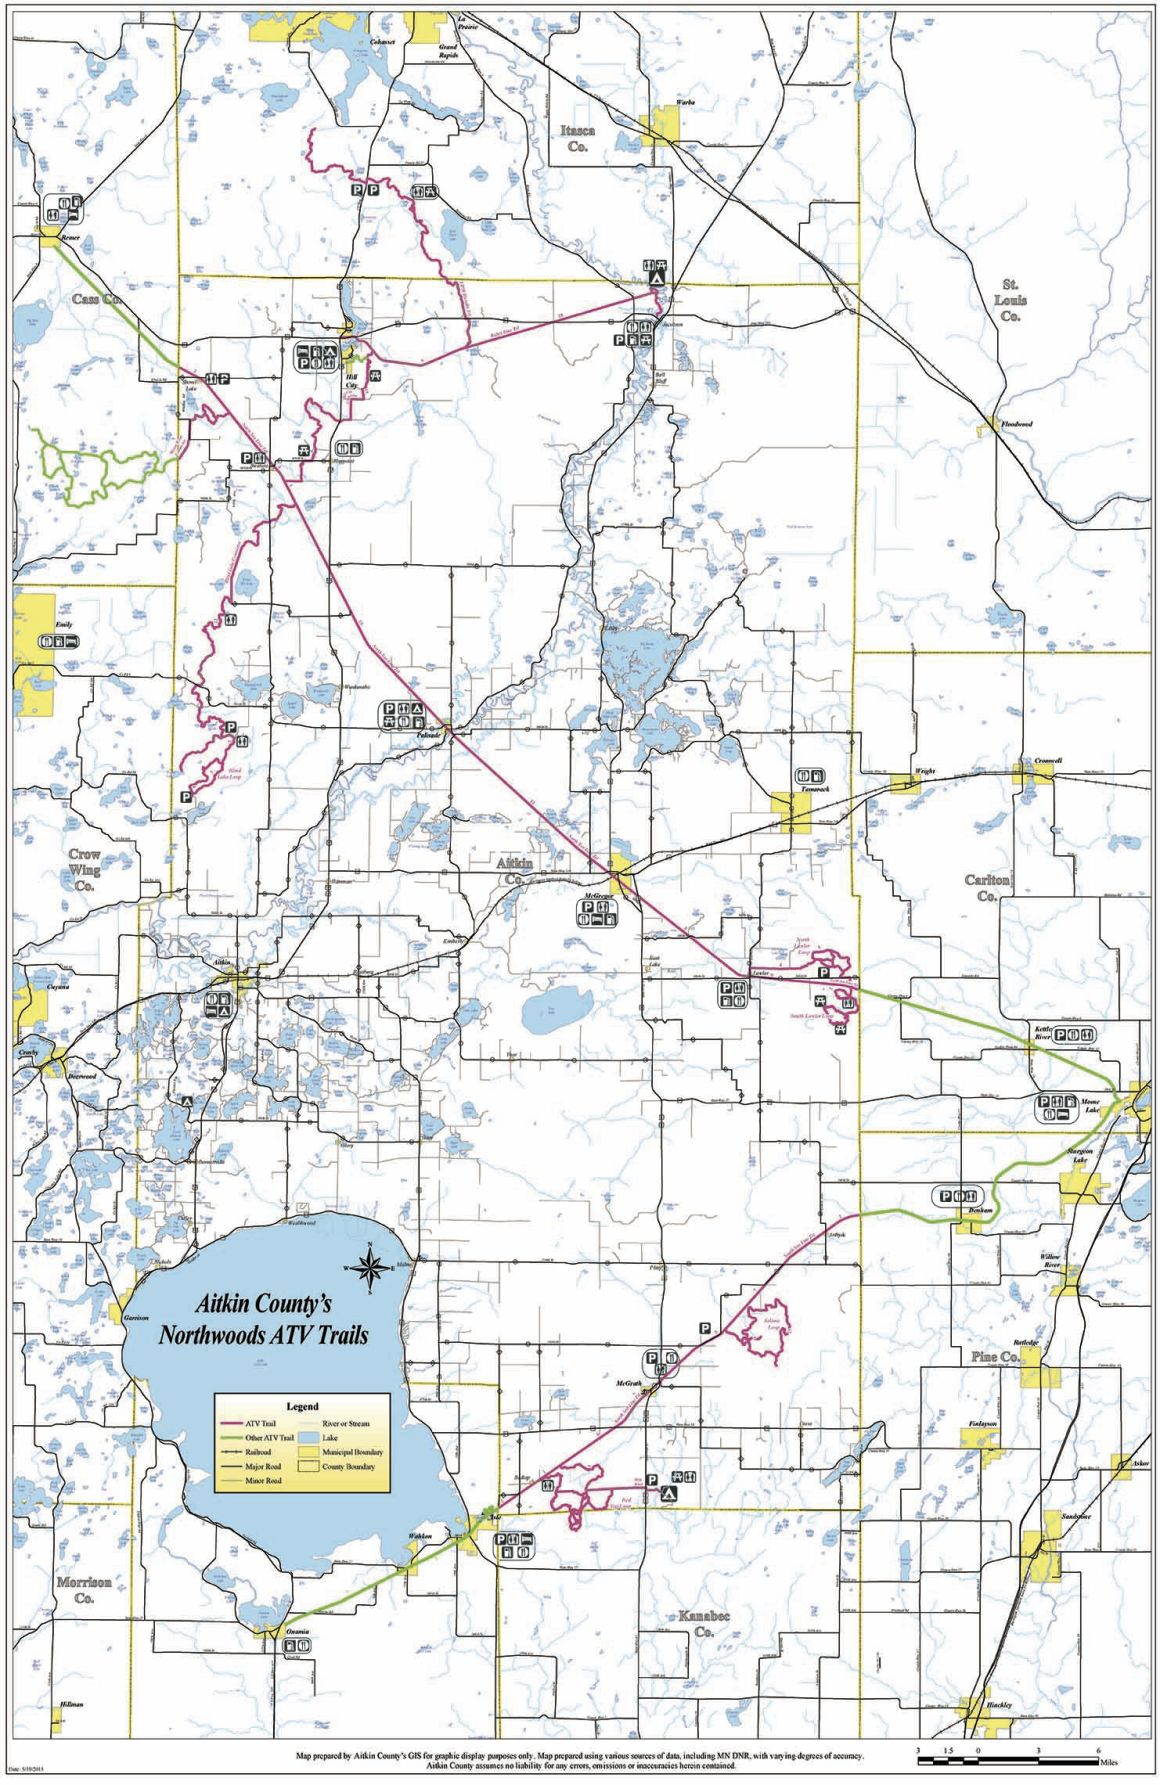 Here's mud in your eye - Progress 2019 - A Closer Look ... on aiken county road map, brown county road map, le sueur county road map, buena vista county road map, hutchinson county road map, chisago county mn plat map, goodhue county township map, aitkin minnesota, marshall county road map, adams county road map, lee township road map, minnesota road map, steele county road map, webster county road map, st croix county road map, beltrami county road map, dawson county road map, becker county road map, roseau county road map, mcleod county road map,